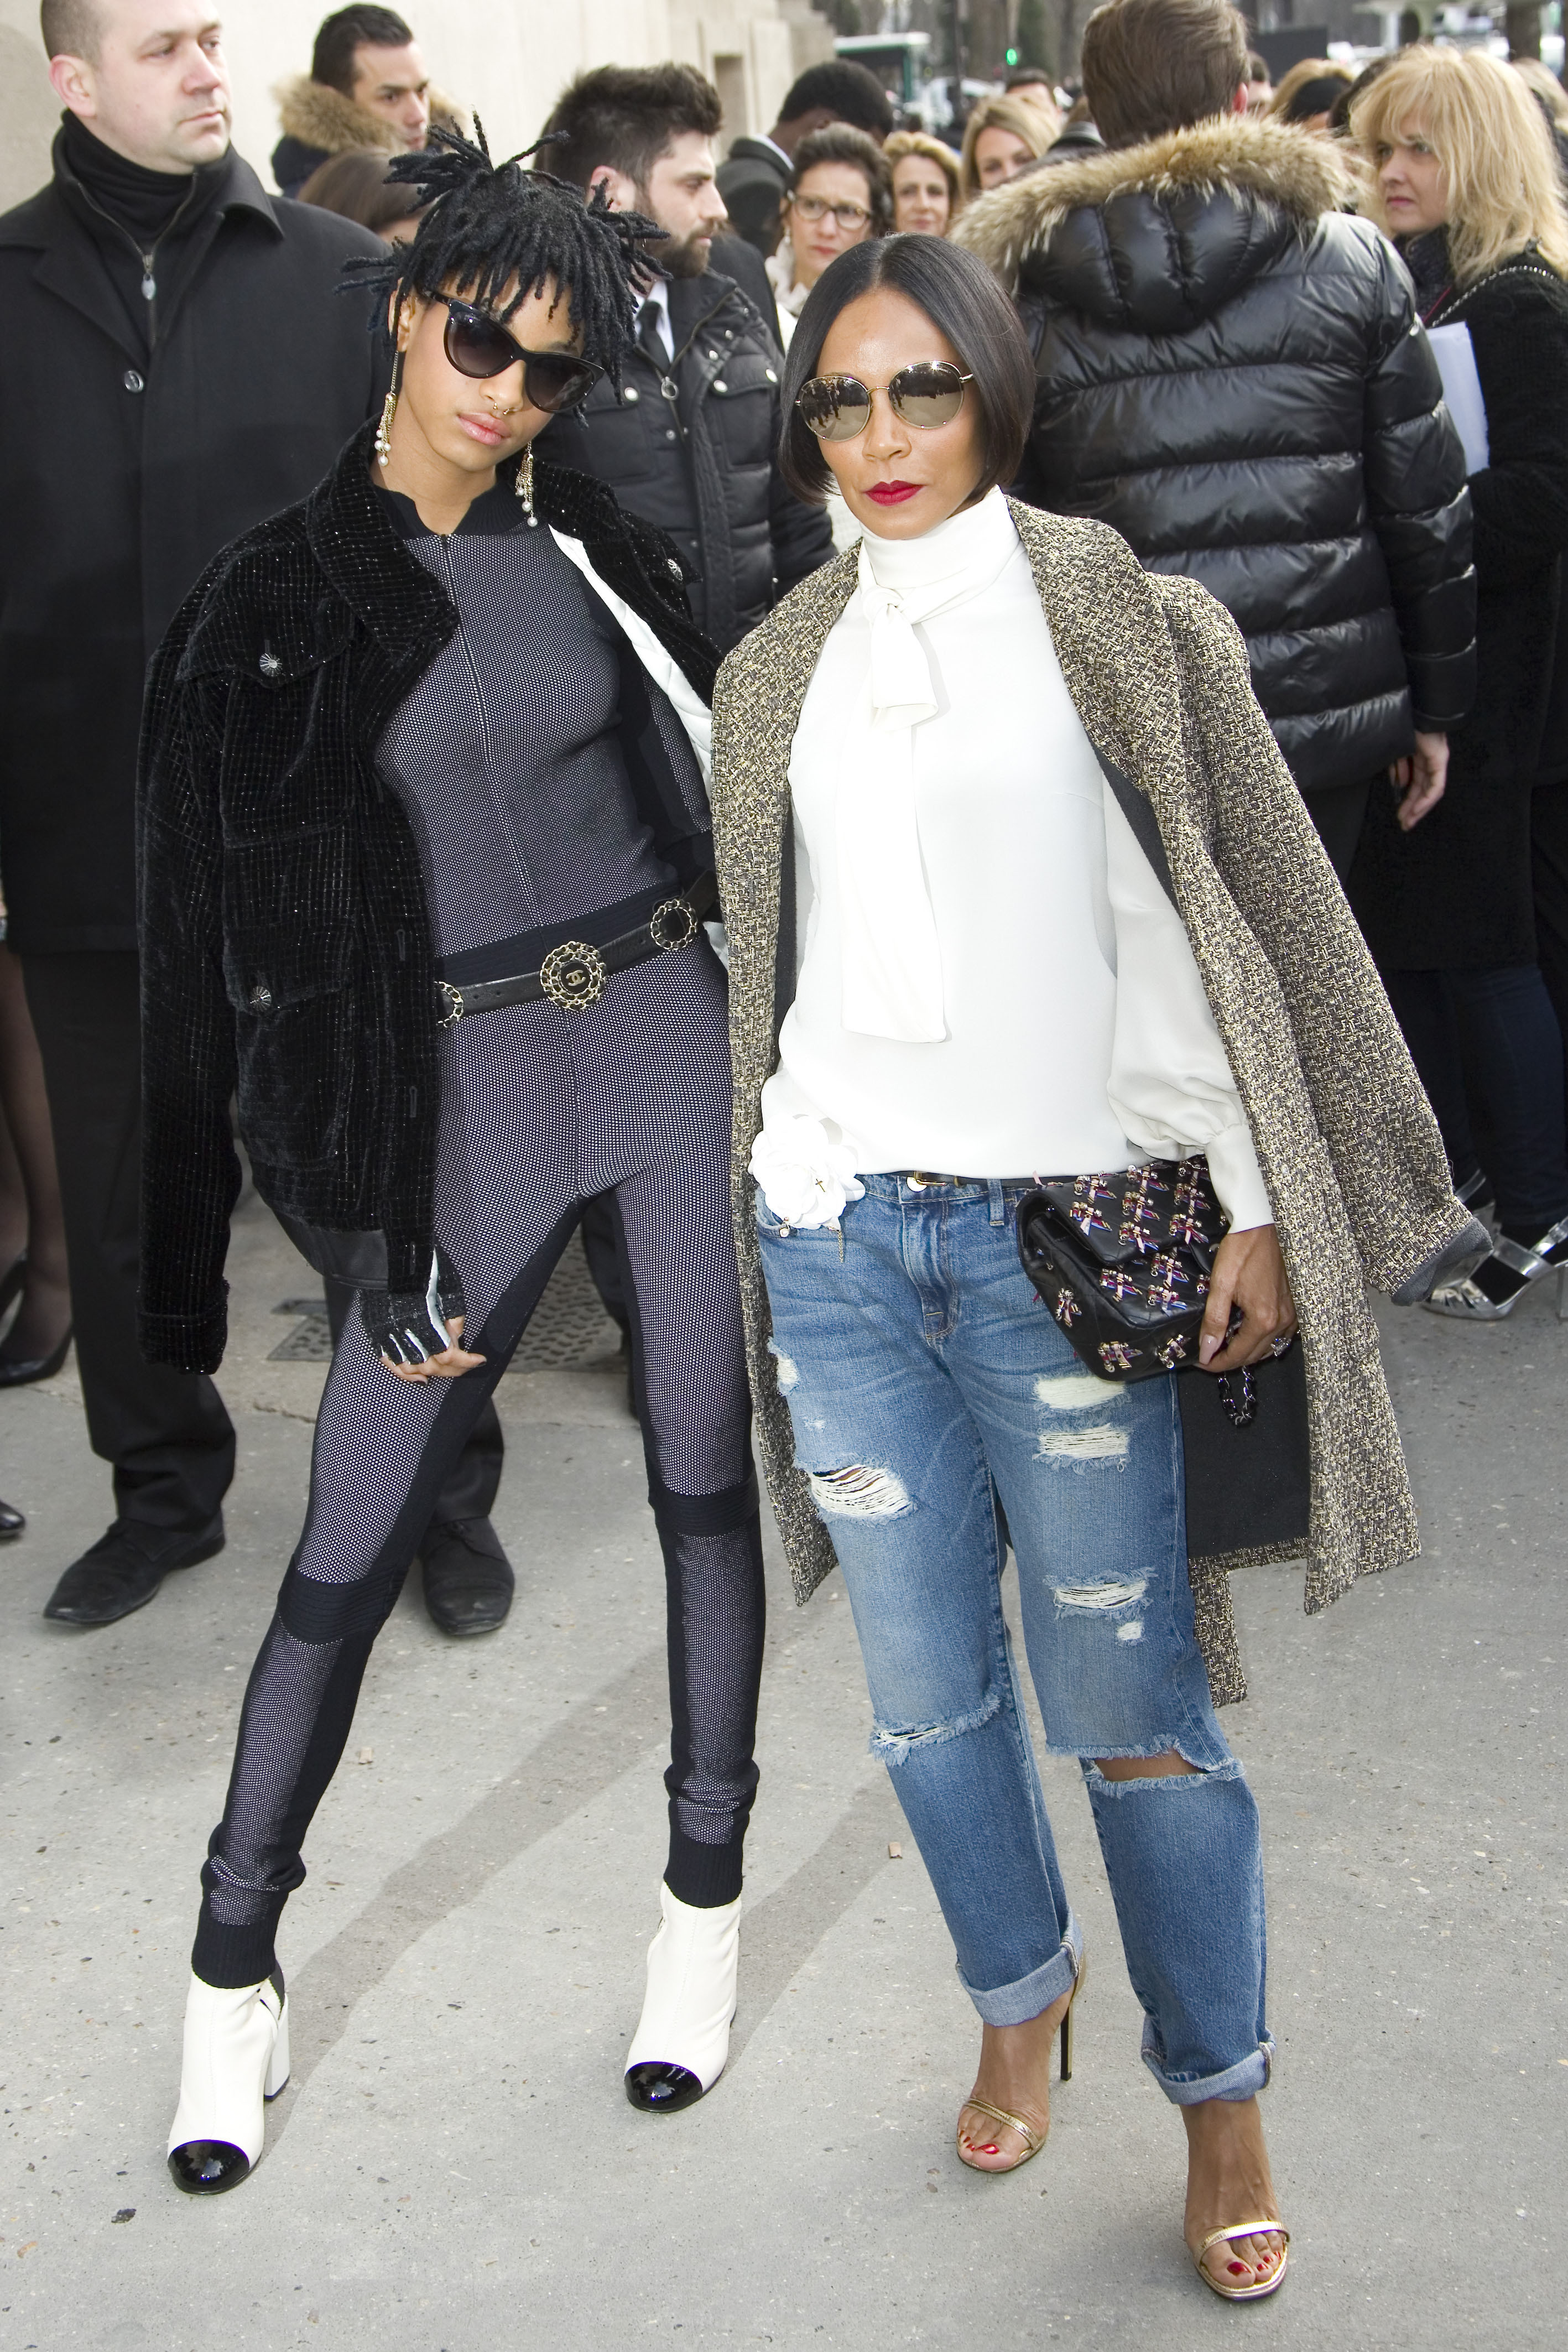 Willow Smith hits Paris as Chanel's new brand ambassador